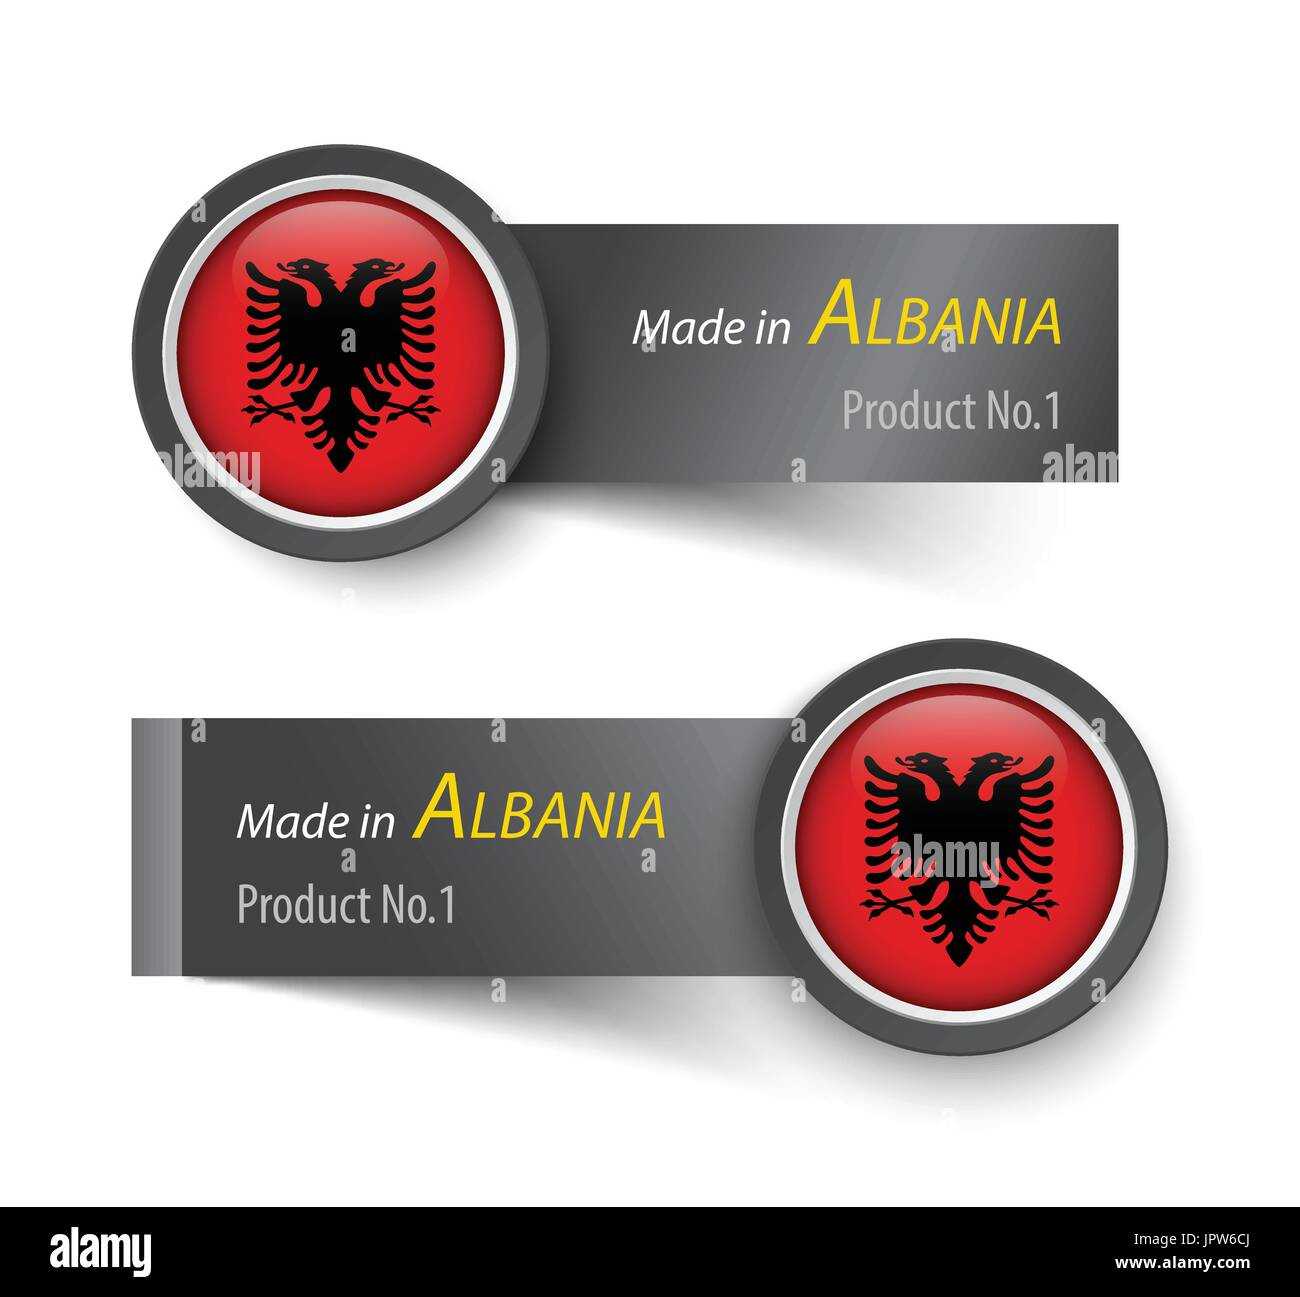 Flag icon and label with text made in Albania . - Stock Image